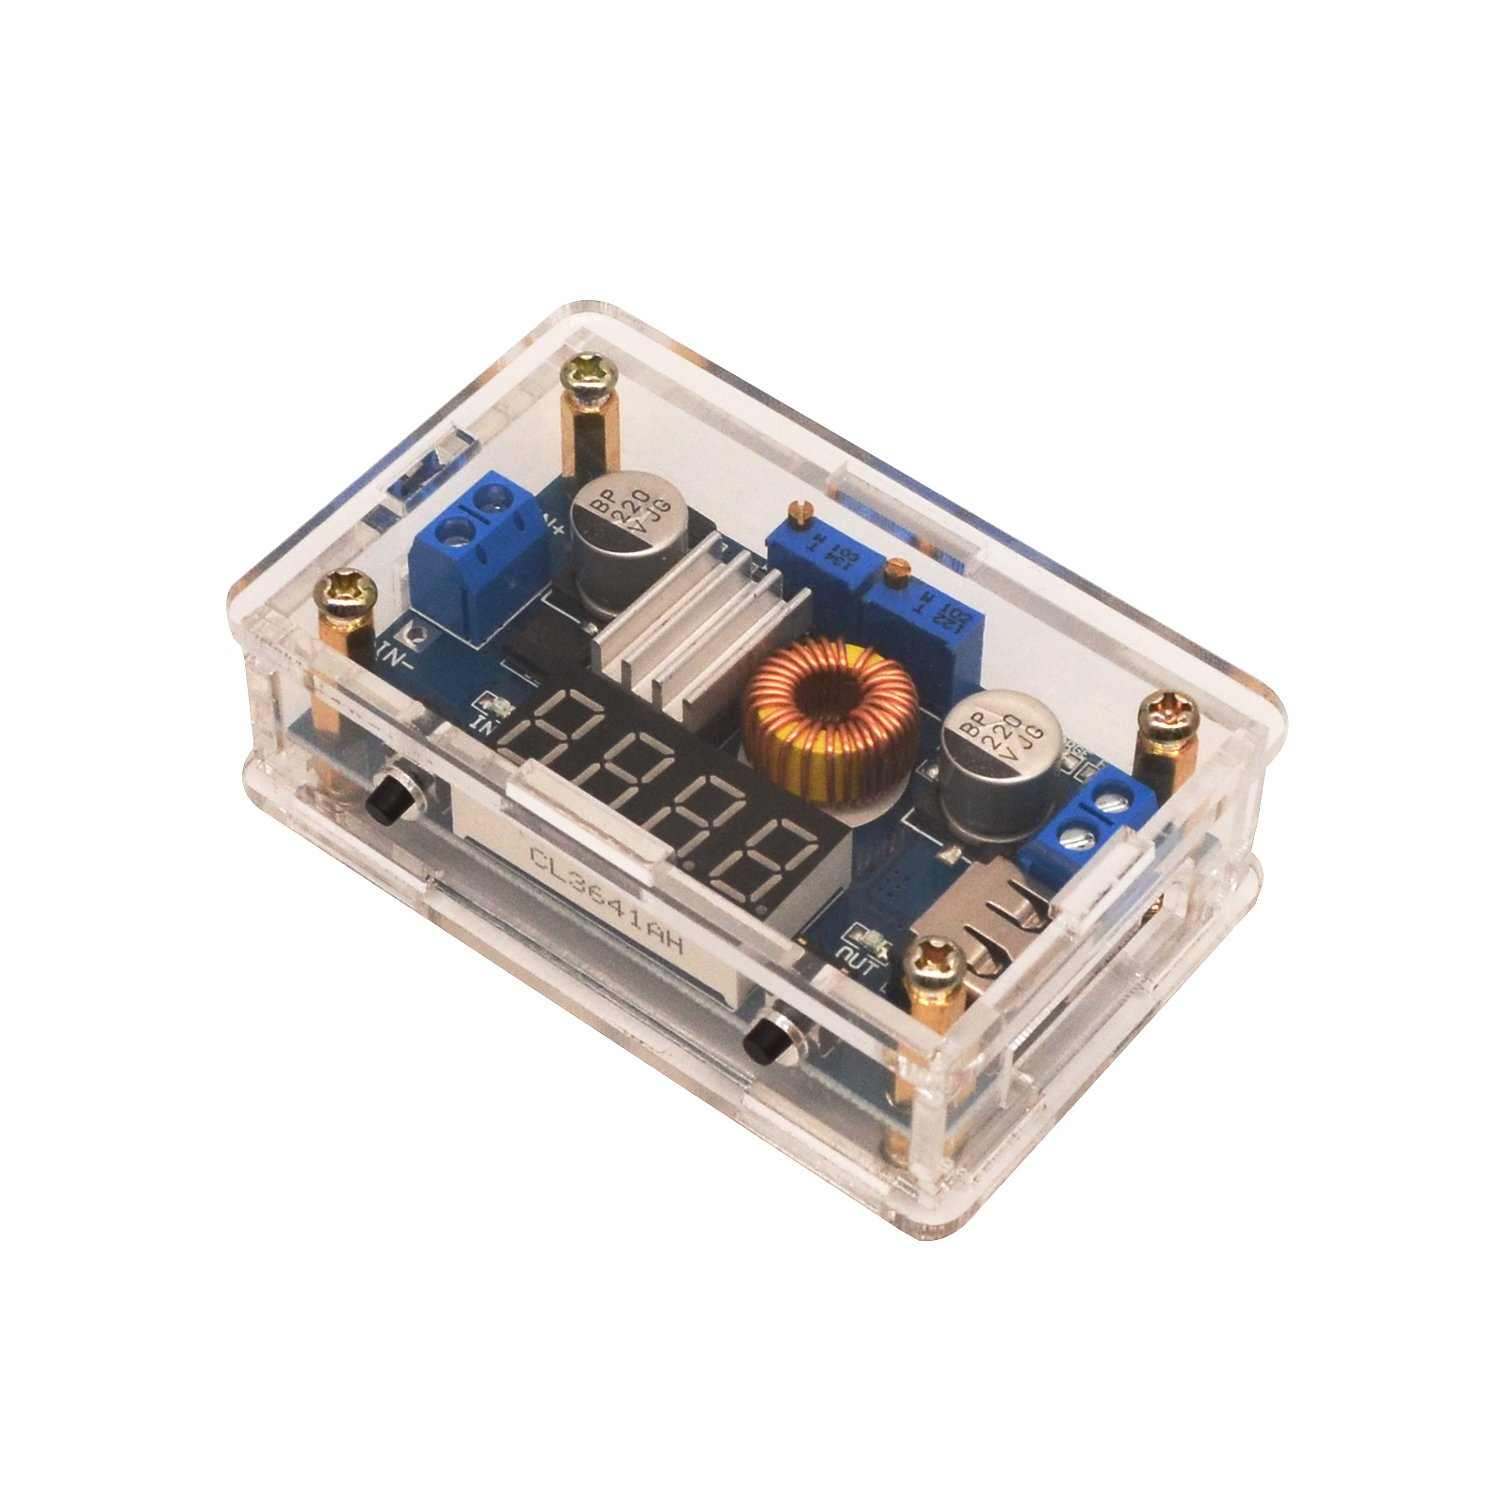 Buck Converter Dc To Input 5 36v Output 125 32v Step Lm317 Automatic Low Cost Emergency Light Circuit Book Free Down Regulator 5a 75w High Power Led Cc Cv Driver Board Battery Charger For Solar